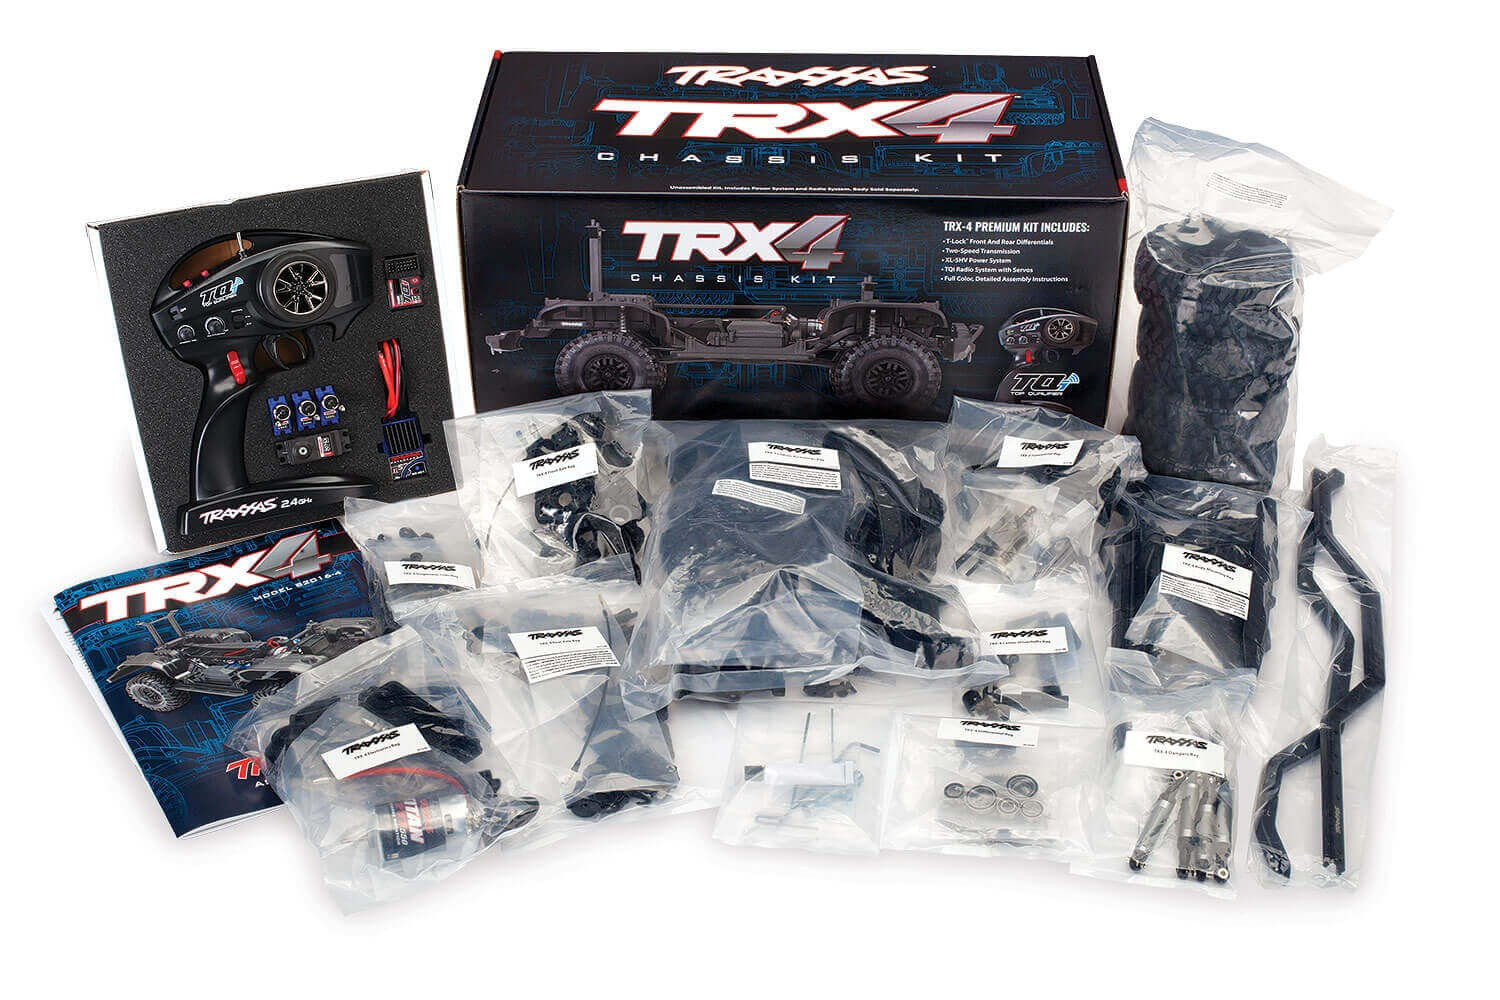 Traxxas TRX-4 1/10 Scale Crawler RC Assembly Kit